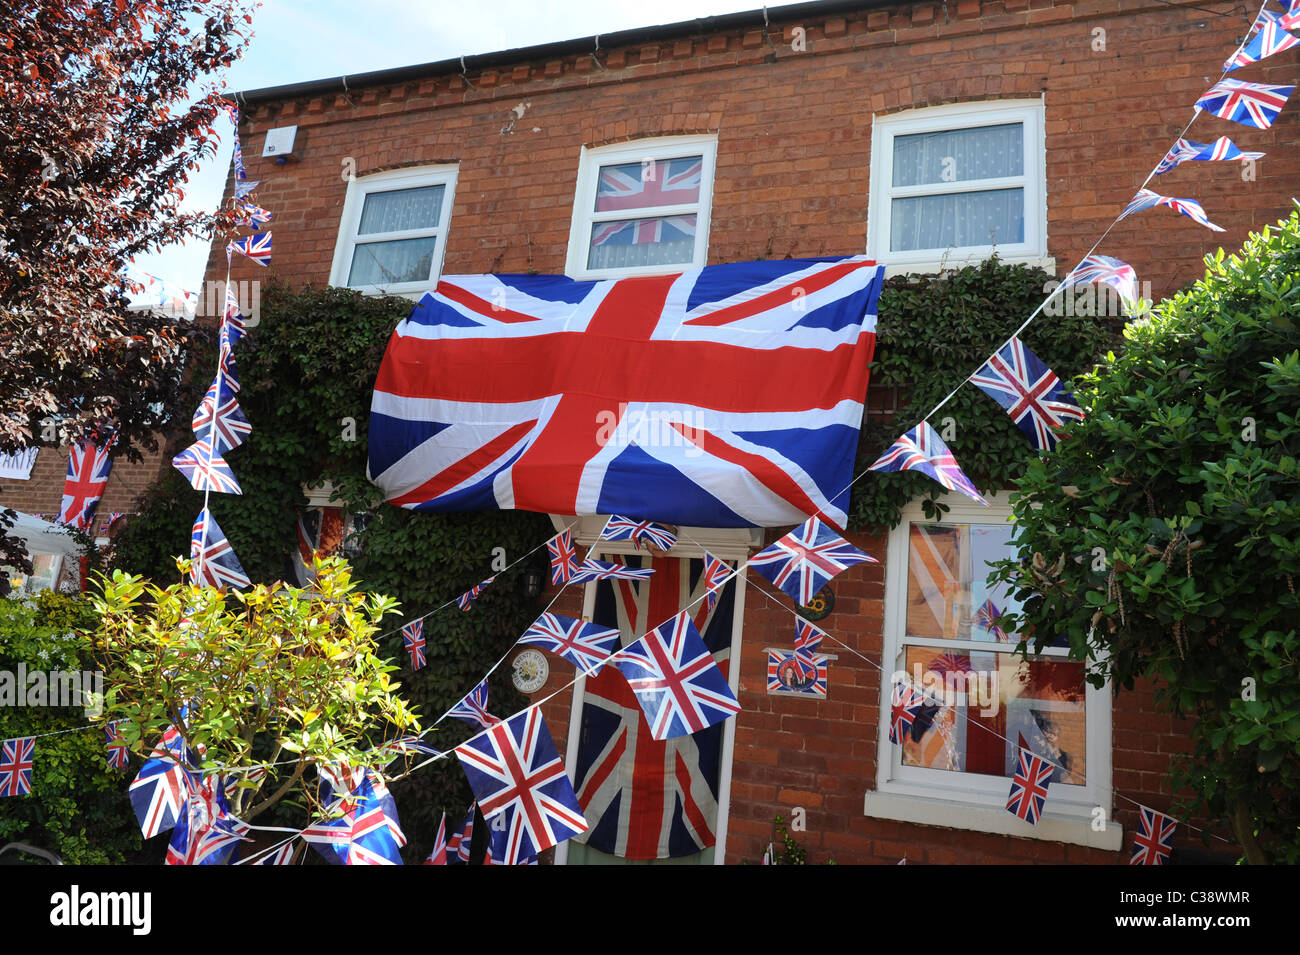 House decorated in Unions Jack flags to celebrate royal wedding in Worcester for a street party Uk - Stock Image